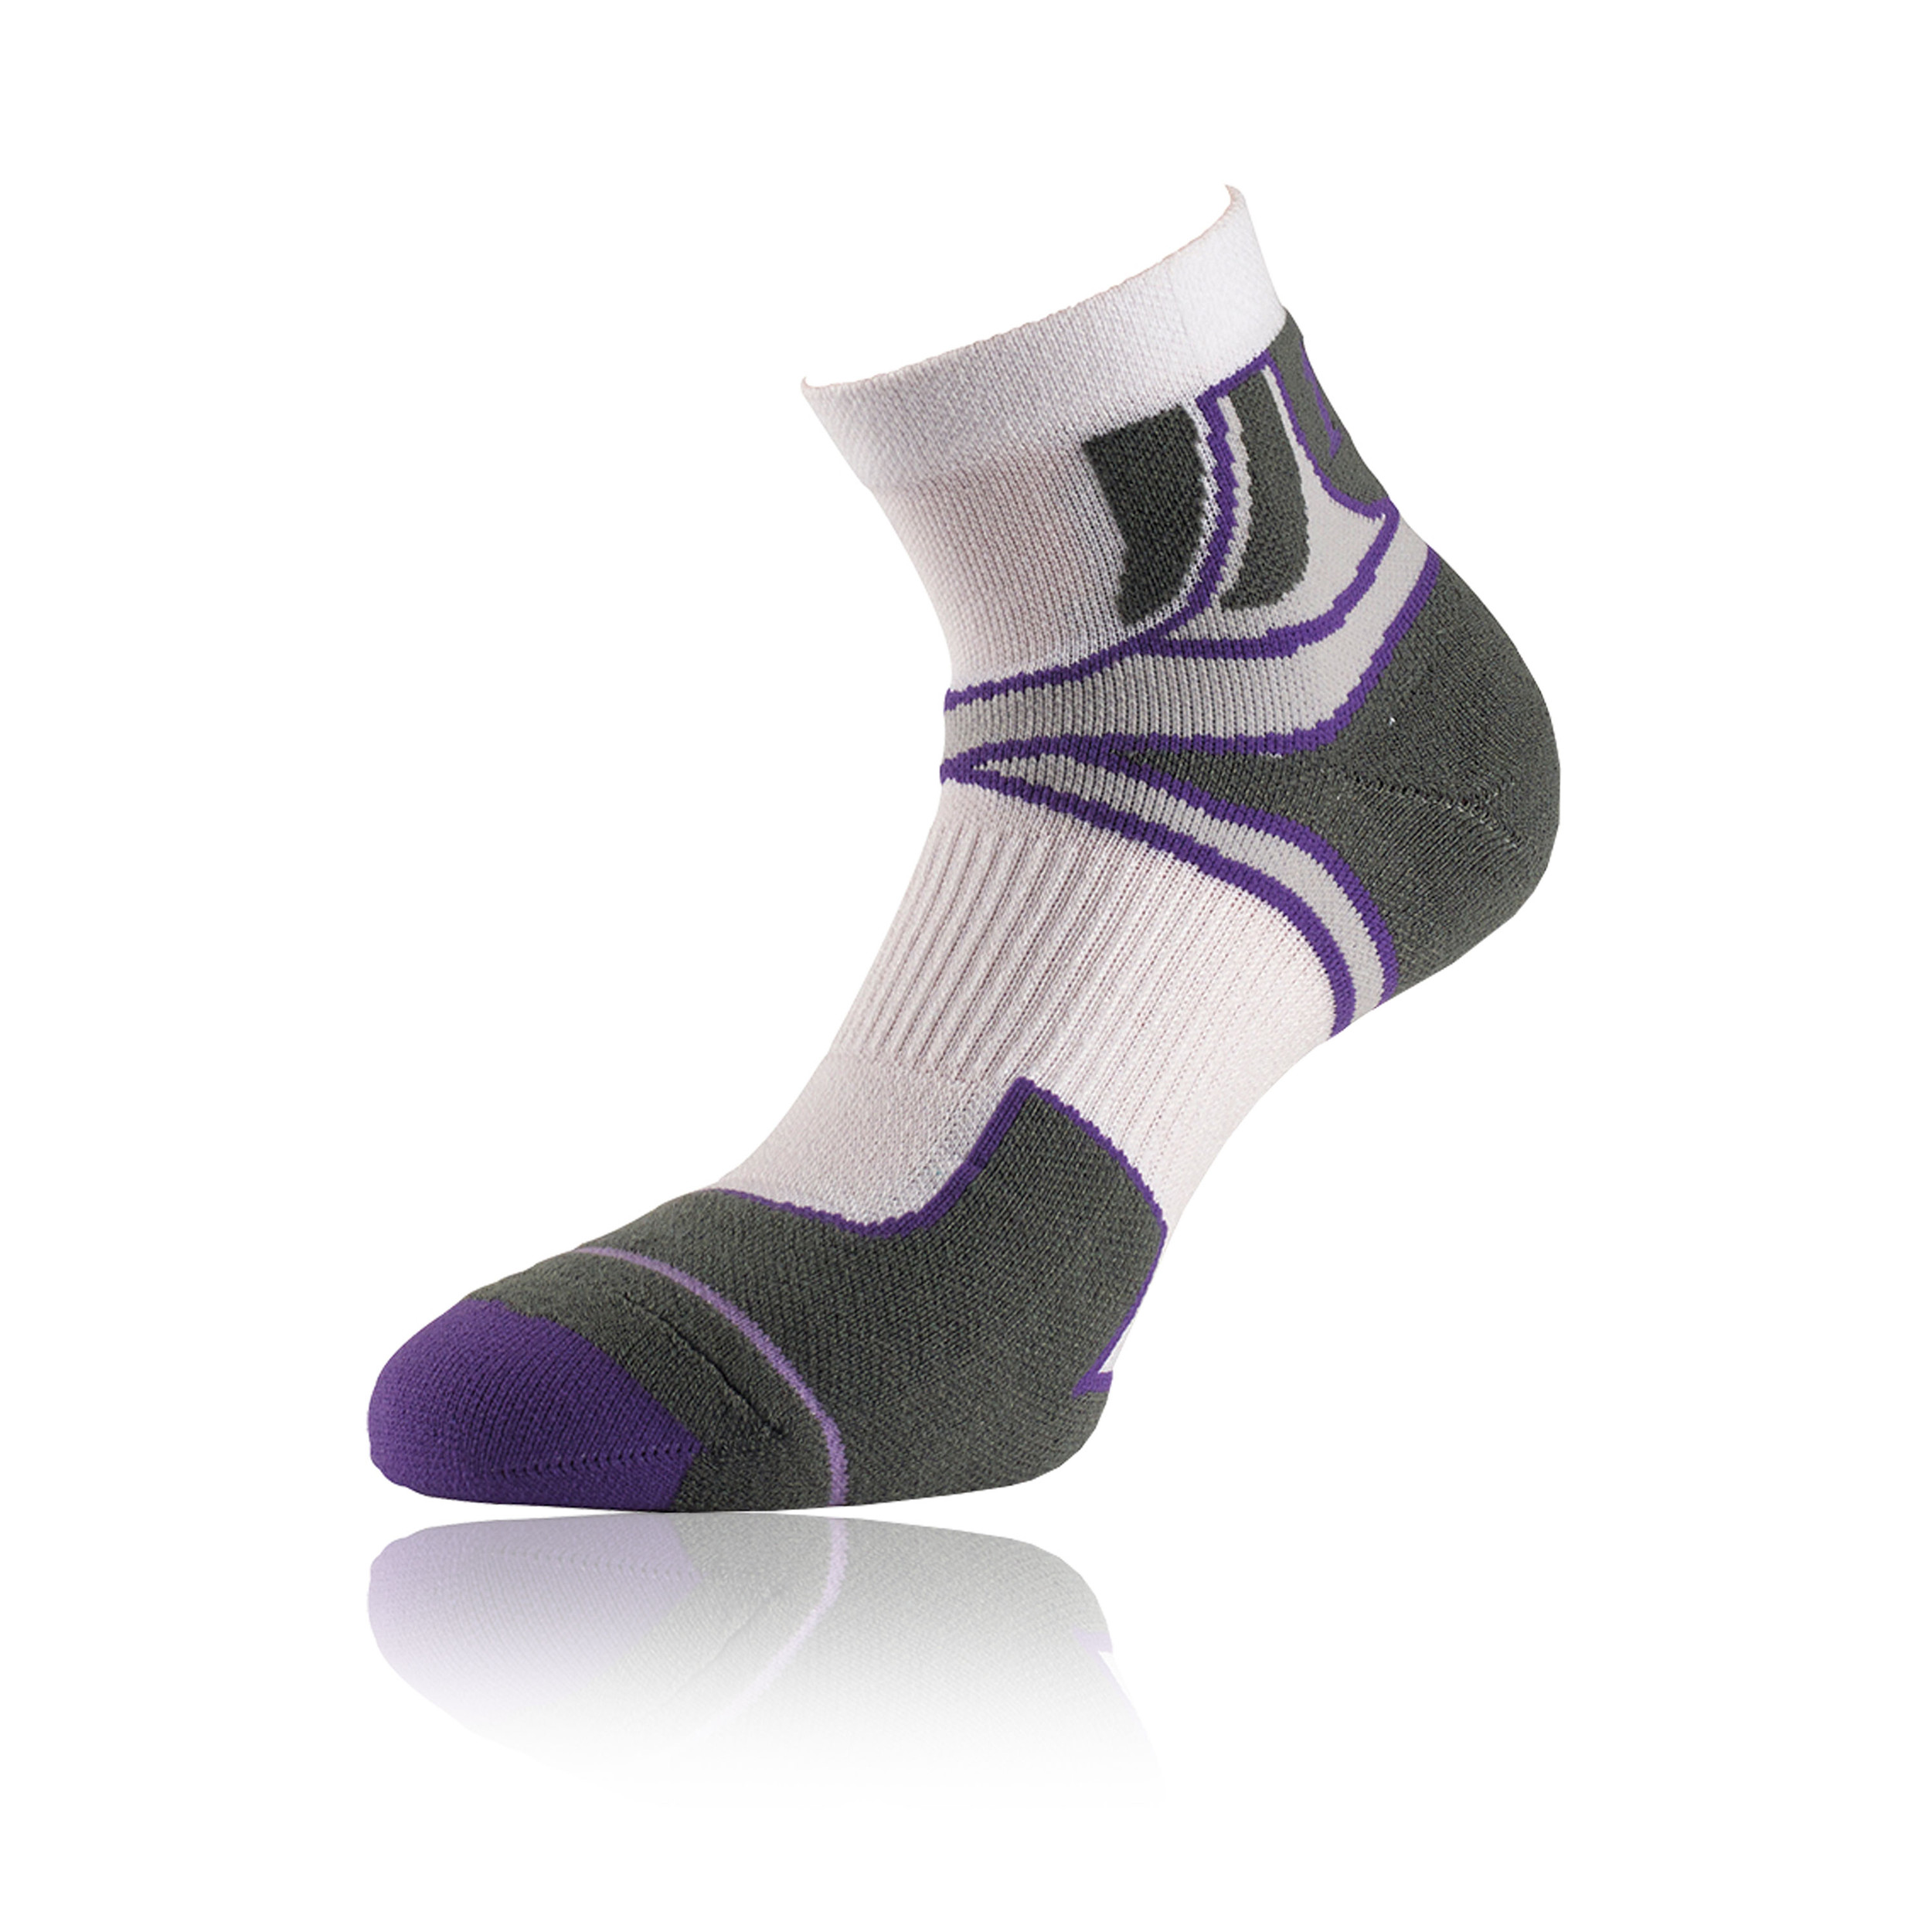 The compression socks have been designed and engineered by athletic trainers using seamless technology which ensures superior comfort and prevents any chafing or skin irritation, common with other compression socks.